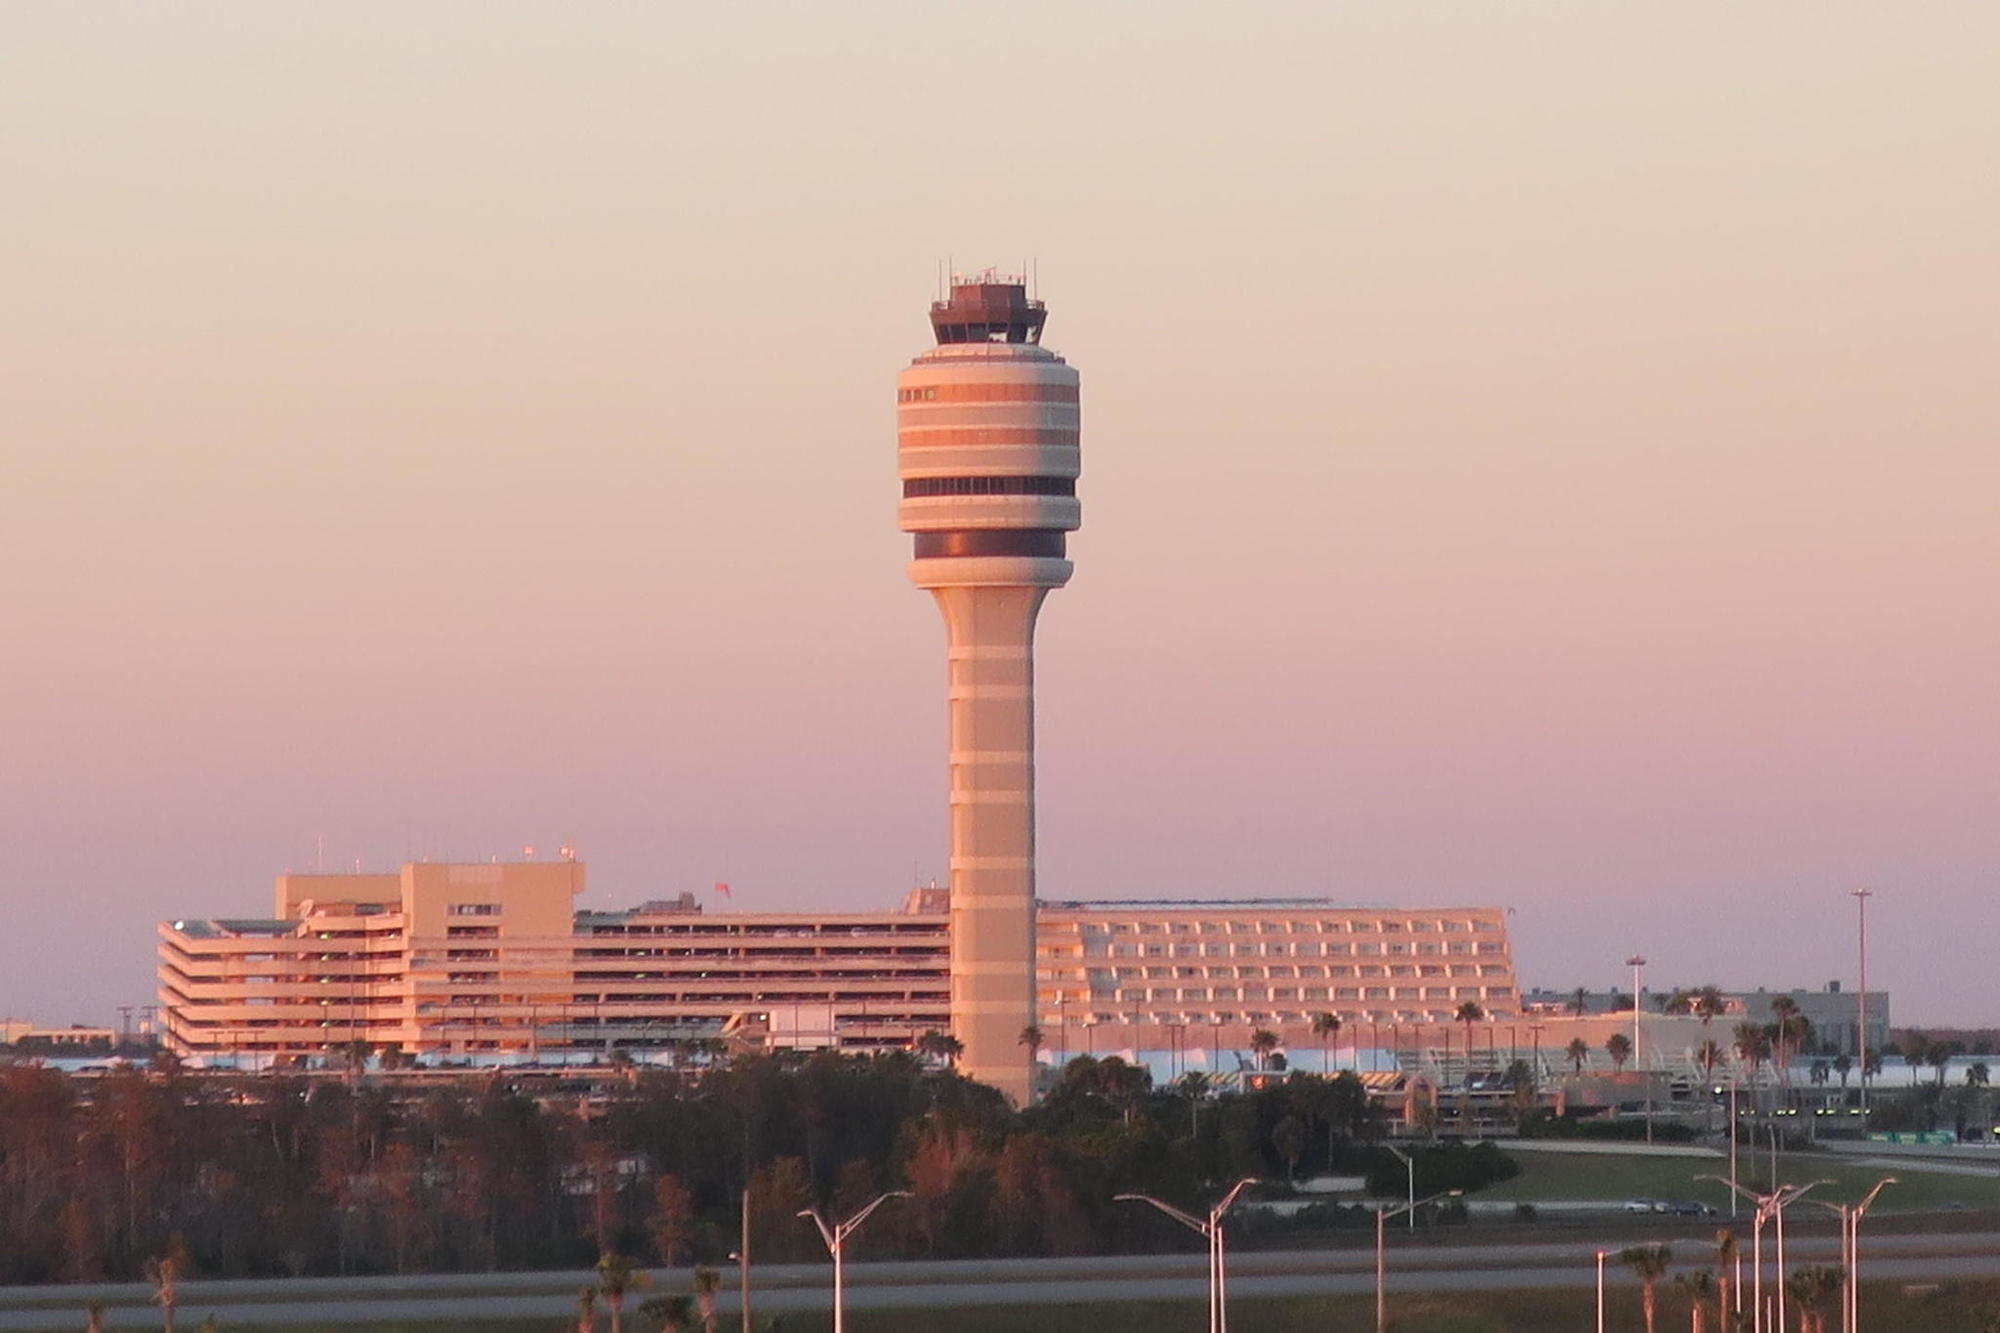 333 passengers taken off plane at Orlando airport after bomb comment, fight, official says